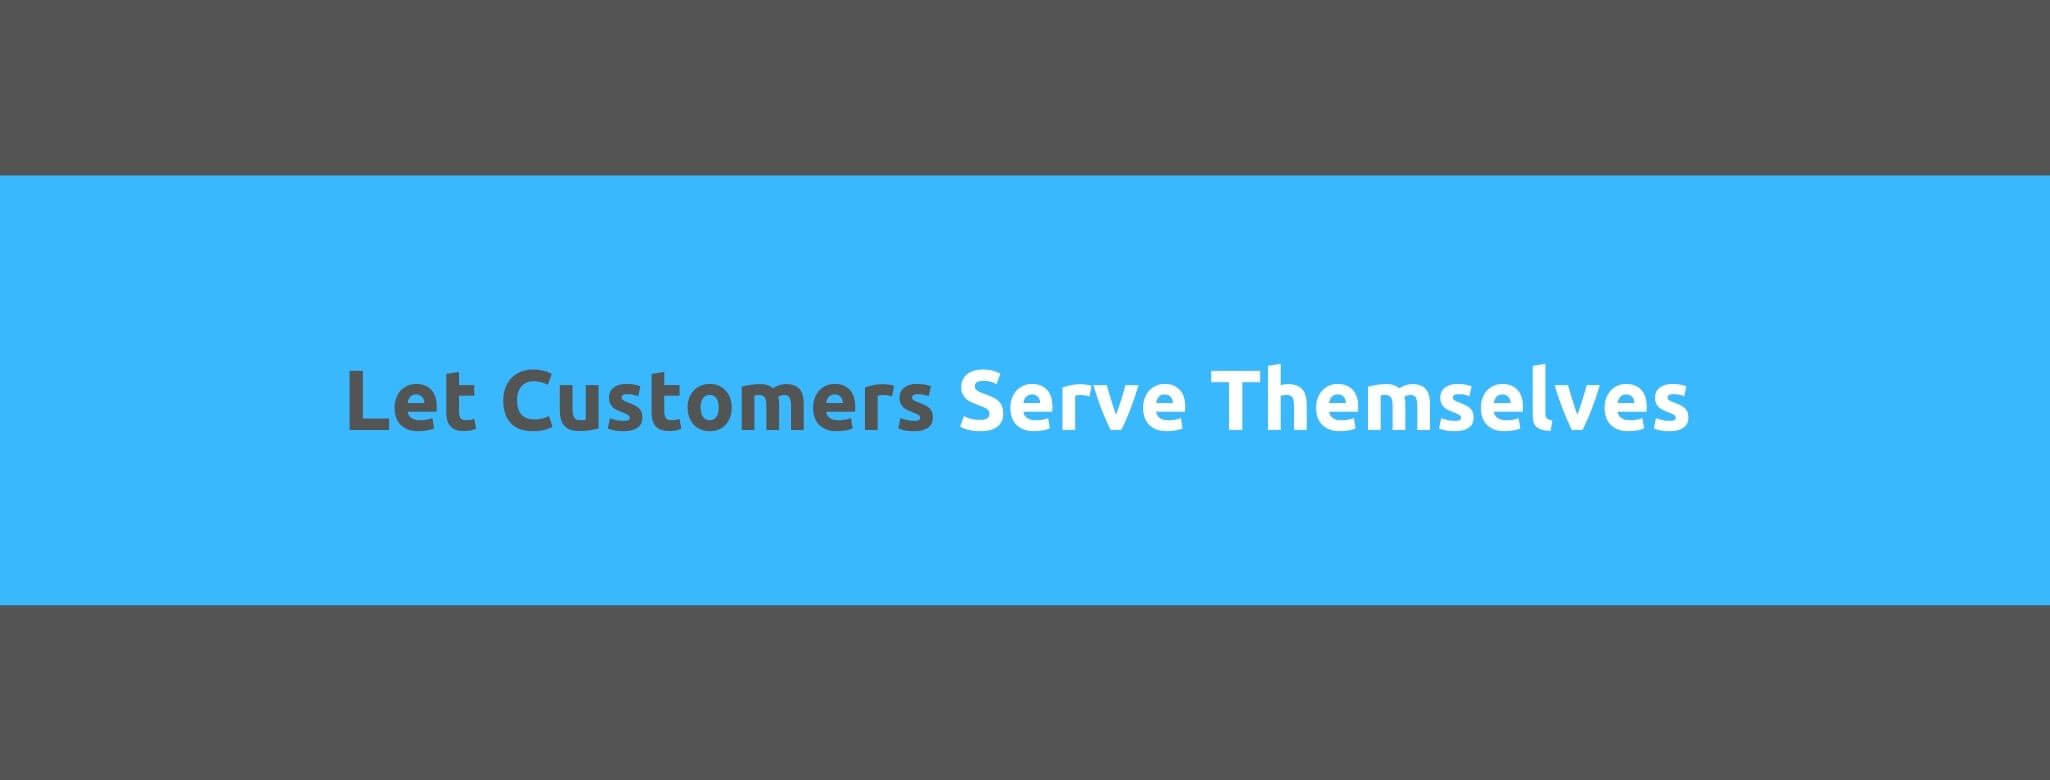 Let Customers Serve Themselves - 25 Rules for Great Customer Service - Replyco Helpdesk Software for eCommerce